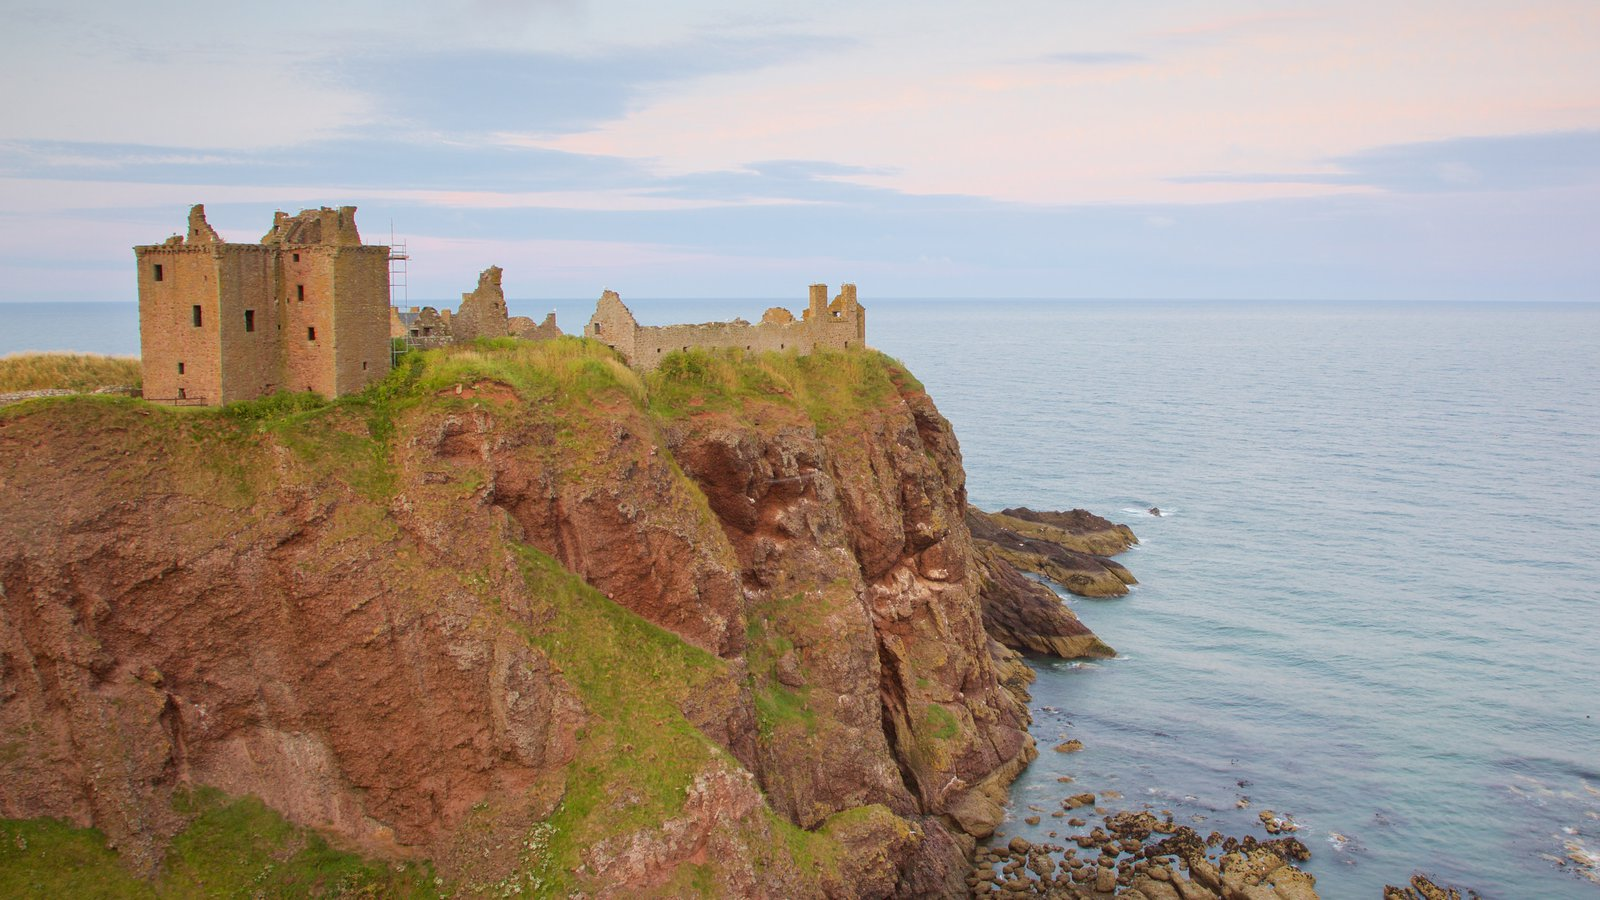 Dunnottar Castle showing general coastal views and a castle